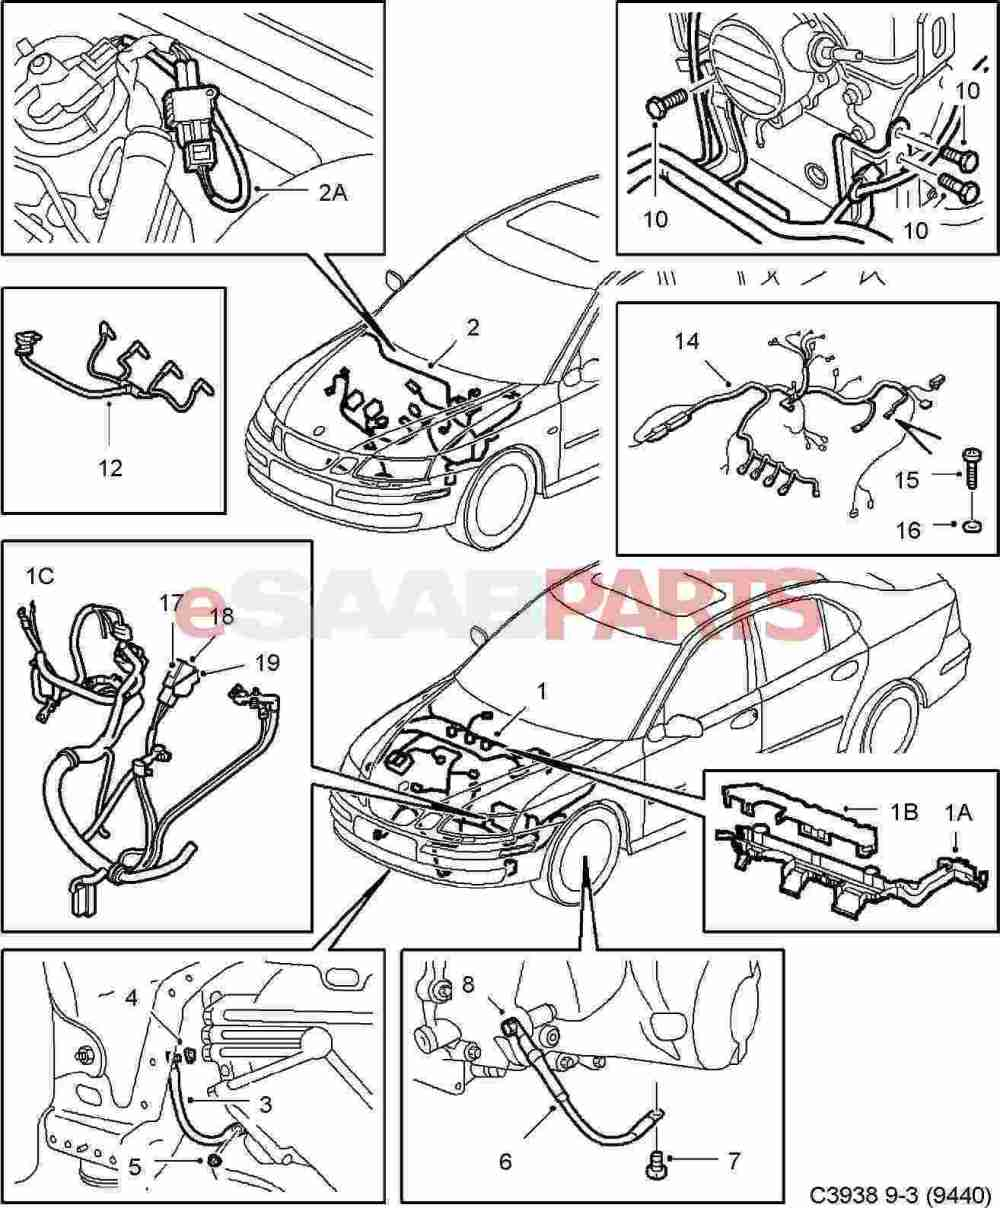 medium resolution of esaabparts com saab 9 3 9440 electrical parts wiring harness engine transmission motor transmission